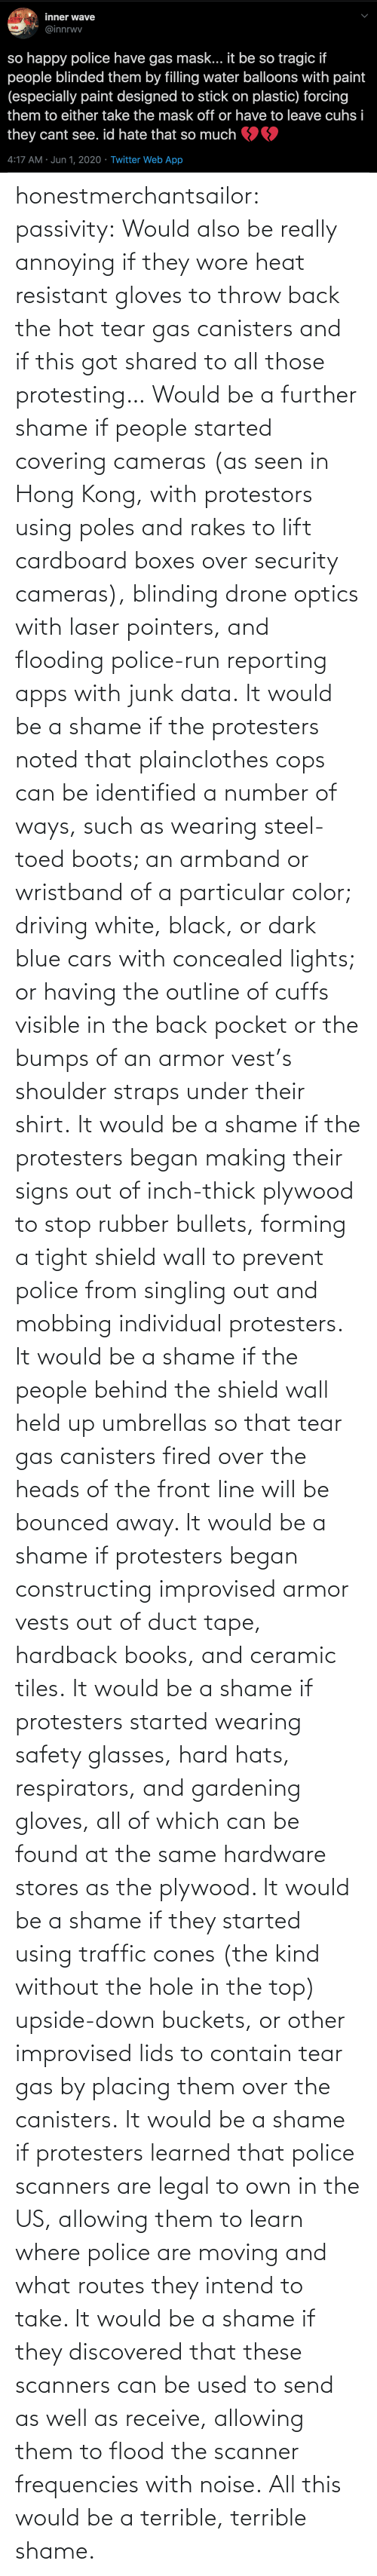 using: honestmerchantsailor:  passivity: Would also be really annoying if they wore heat resistant gloves to throw back the hot tear gas canisters and if this got shared to all those protesting… Would be a further shame if people started covering cameras (as seen in Hong Kong, with protestors using poles and rakes to lift cardboard boxes over security cameras), blinding drone optics with laser pointers, and flooding police-run reporting apps with junk data. It would be a shame if the protesters noted that plainclothes cops can be identified a number of ways, such as wearing steel-toed boots; an armband or wristband of a particular color; driving white, black, or dark blue cars with concealed lights; or having the outline of cuffs visible in the back pocket or the bumps of an armor vest's shoulder straps under their shirt. It would be a shame if the protesters began making their signs out of inch-thick plywood to stop rubber bullets, forming a tight shield wall to prevent police from singling out and mobbing individual protesters. It would be a shame if the people behind the shield wall held up umbrellas so that tear gas canisters fired over the heads of the front line will be bounced away. It would be a shame if protesters began constructing improvised armor vests out of duct tape, hardback books, and ceramic tiles. It would be a shame if protesters started wearing safety glasses, hard hats, respirators, and gardening gloves, all of which can be found at the same hardware stores as the plywood. It would be a shame if they started using traffic cones (the kind without the hole in the top) upside-down buckets, or other improvised lids to contain tear gas by placing them over the canisters. It would be a shame if protesters learned that police scanners are legal to own in the US, allowing them to learn where police are moving and what routes they intend to take. It would be a shame if they discovered that these scanners can be used to send as well as receive, allowing them to flood the scanner frequencies with noise. All this would be a terrible, terrible shame.